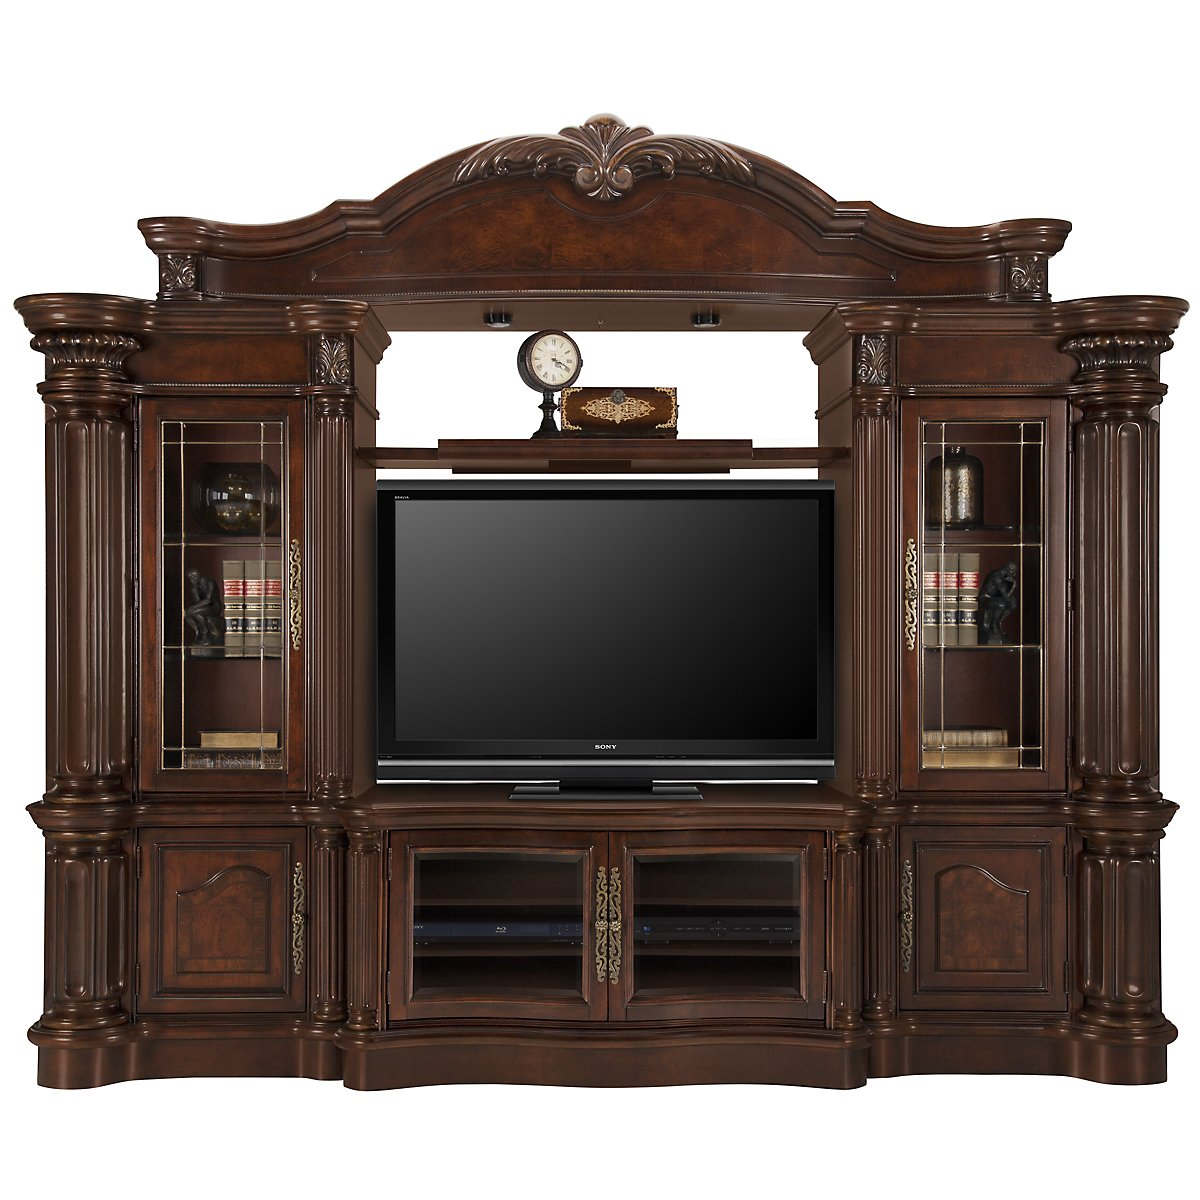 Regal3 Dark Tone Wood Entertainment Wall